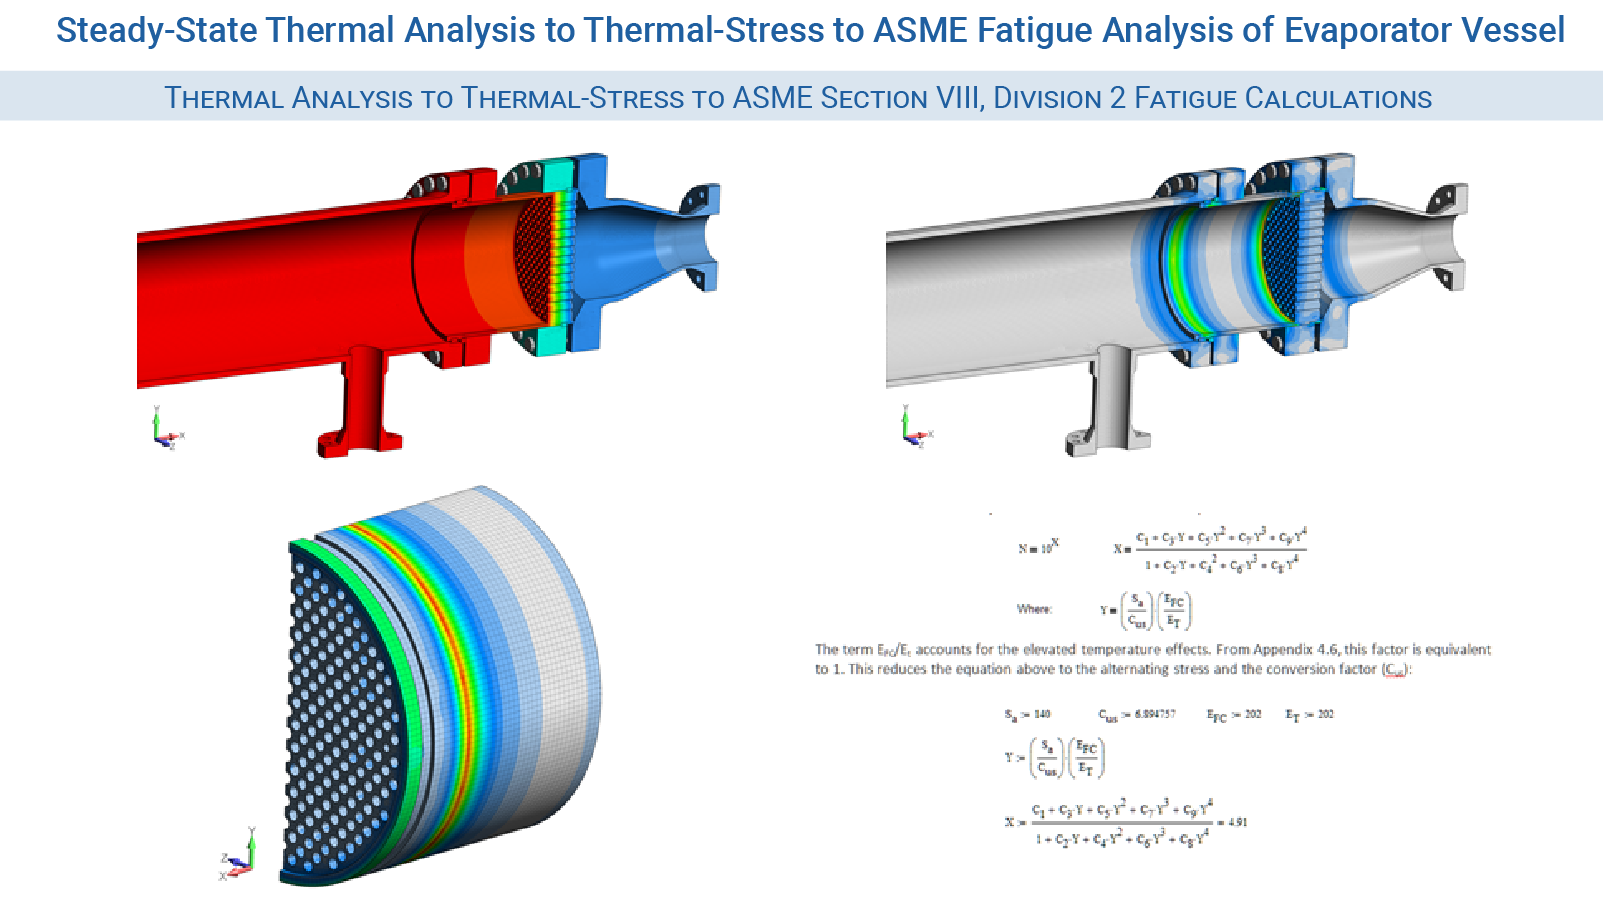 FEA Pressure Vessel Consultants - Steady-State Thermal Analysis to Thermal-Stress to ASME Fatigue Analysis of Evaporator Vessel